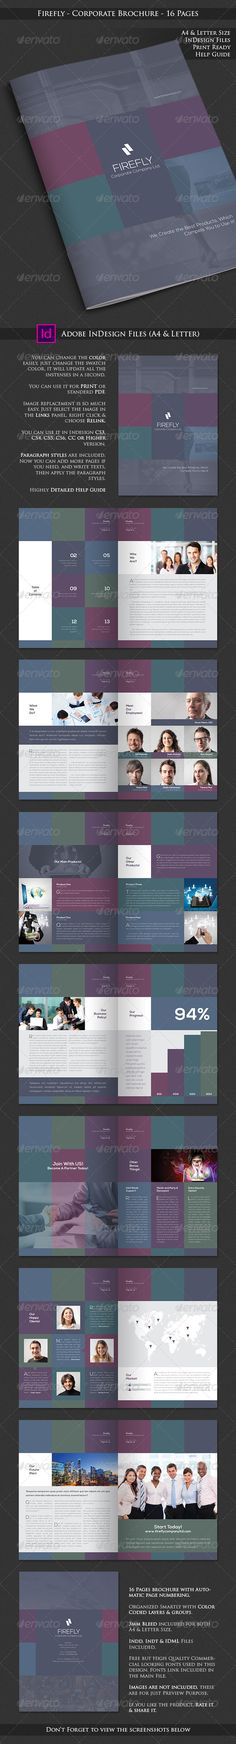 Company Profile Business Brochure Business brochure, Company - format of company profile